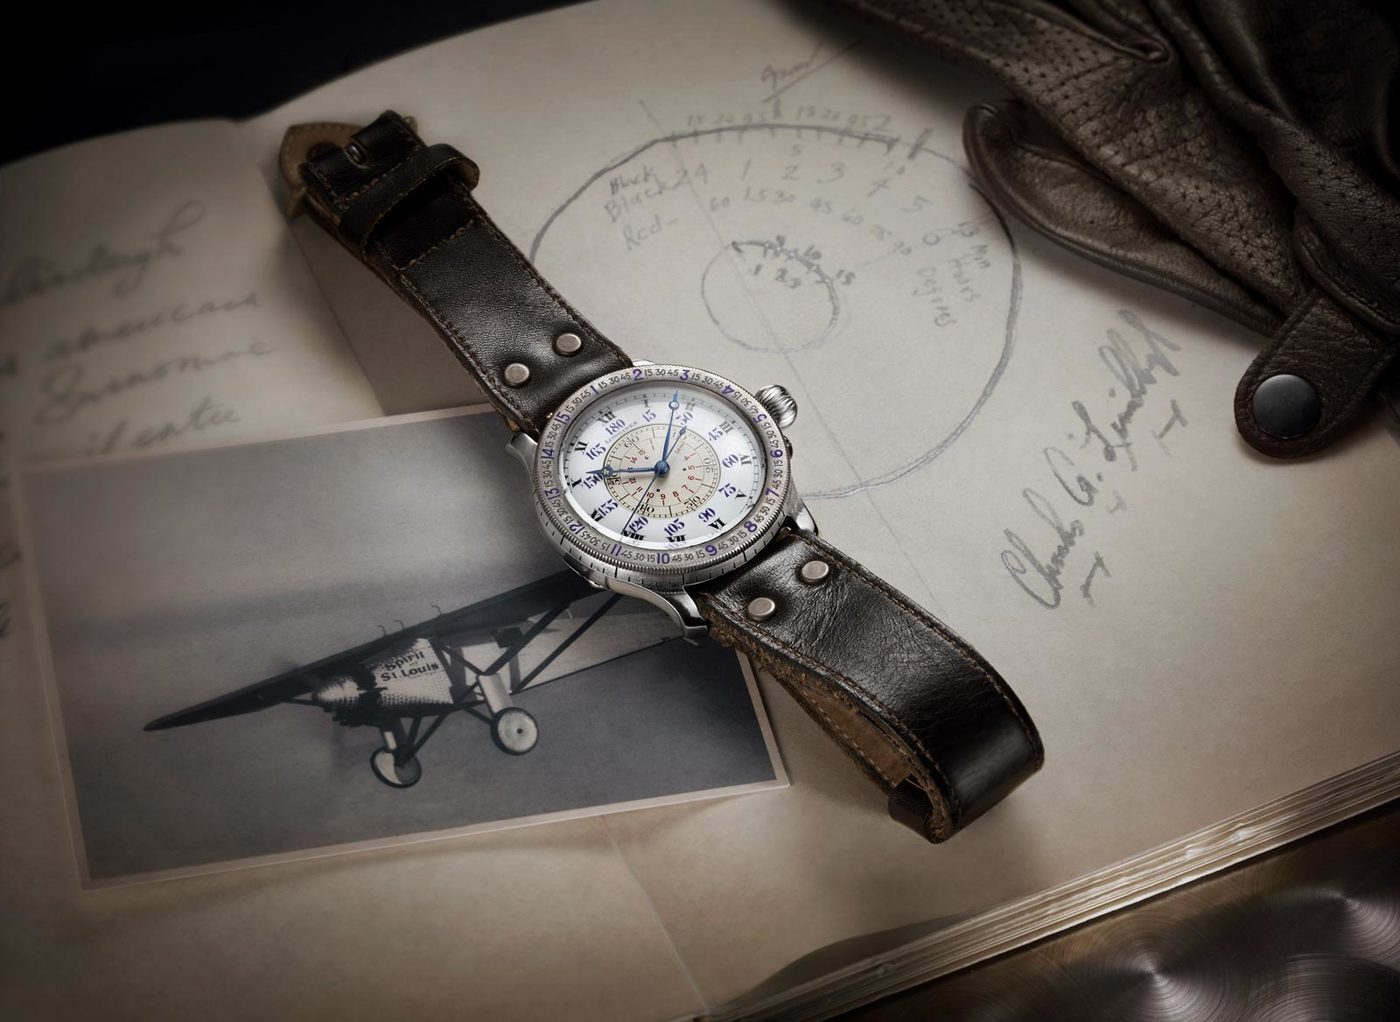 Longines Corporate Event: 90 years ago, Longines timed the amazing first solo transatlantic flight by Charles Lindbergh 2